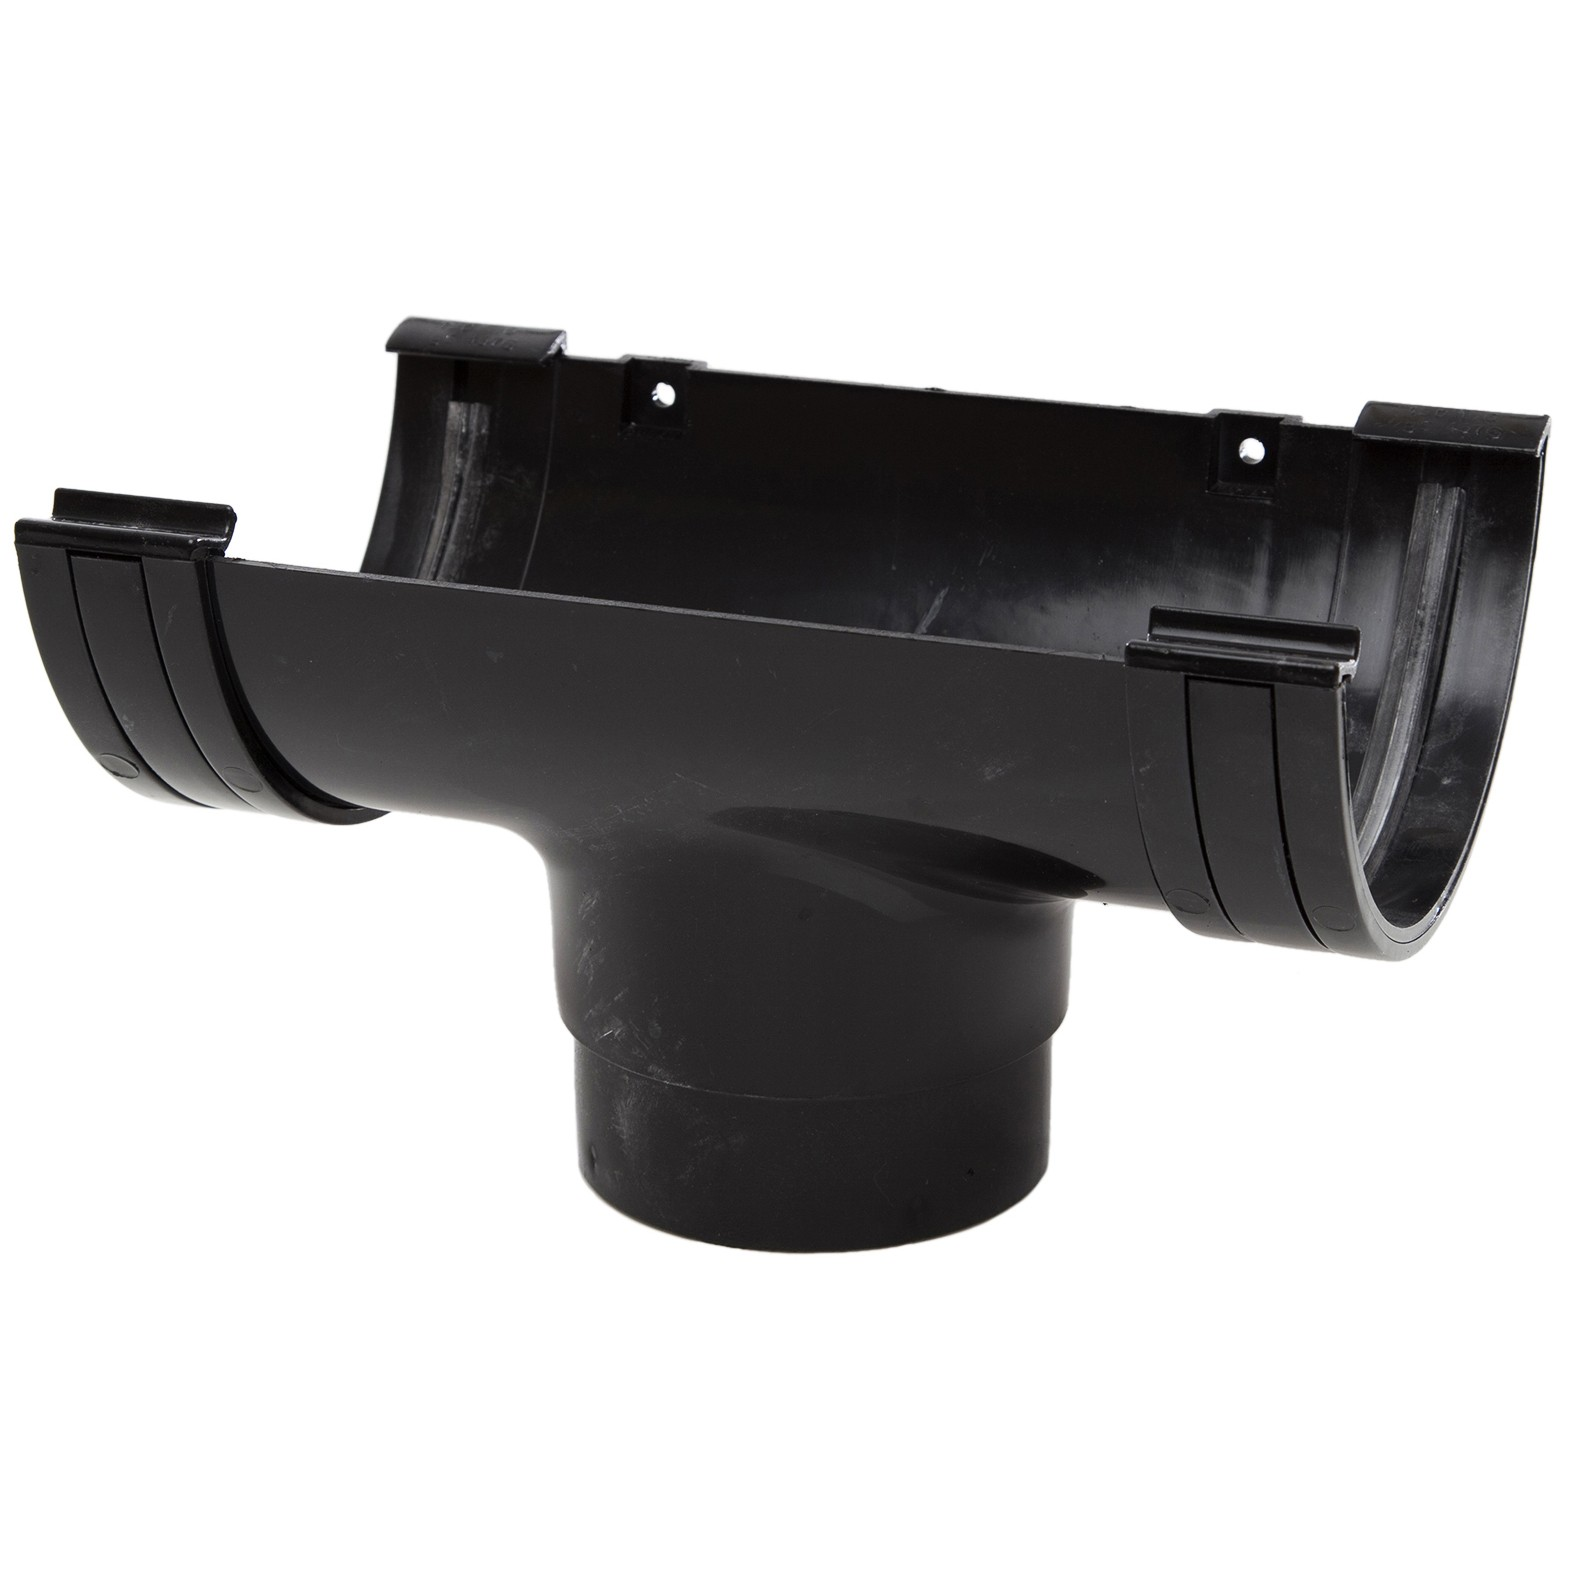 Polypipe 150mm Large Half Round Gutter Running Outlet - Black